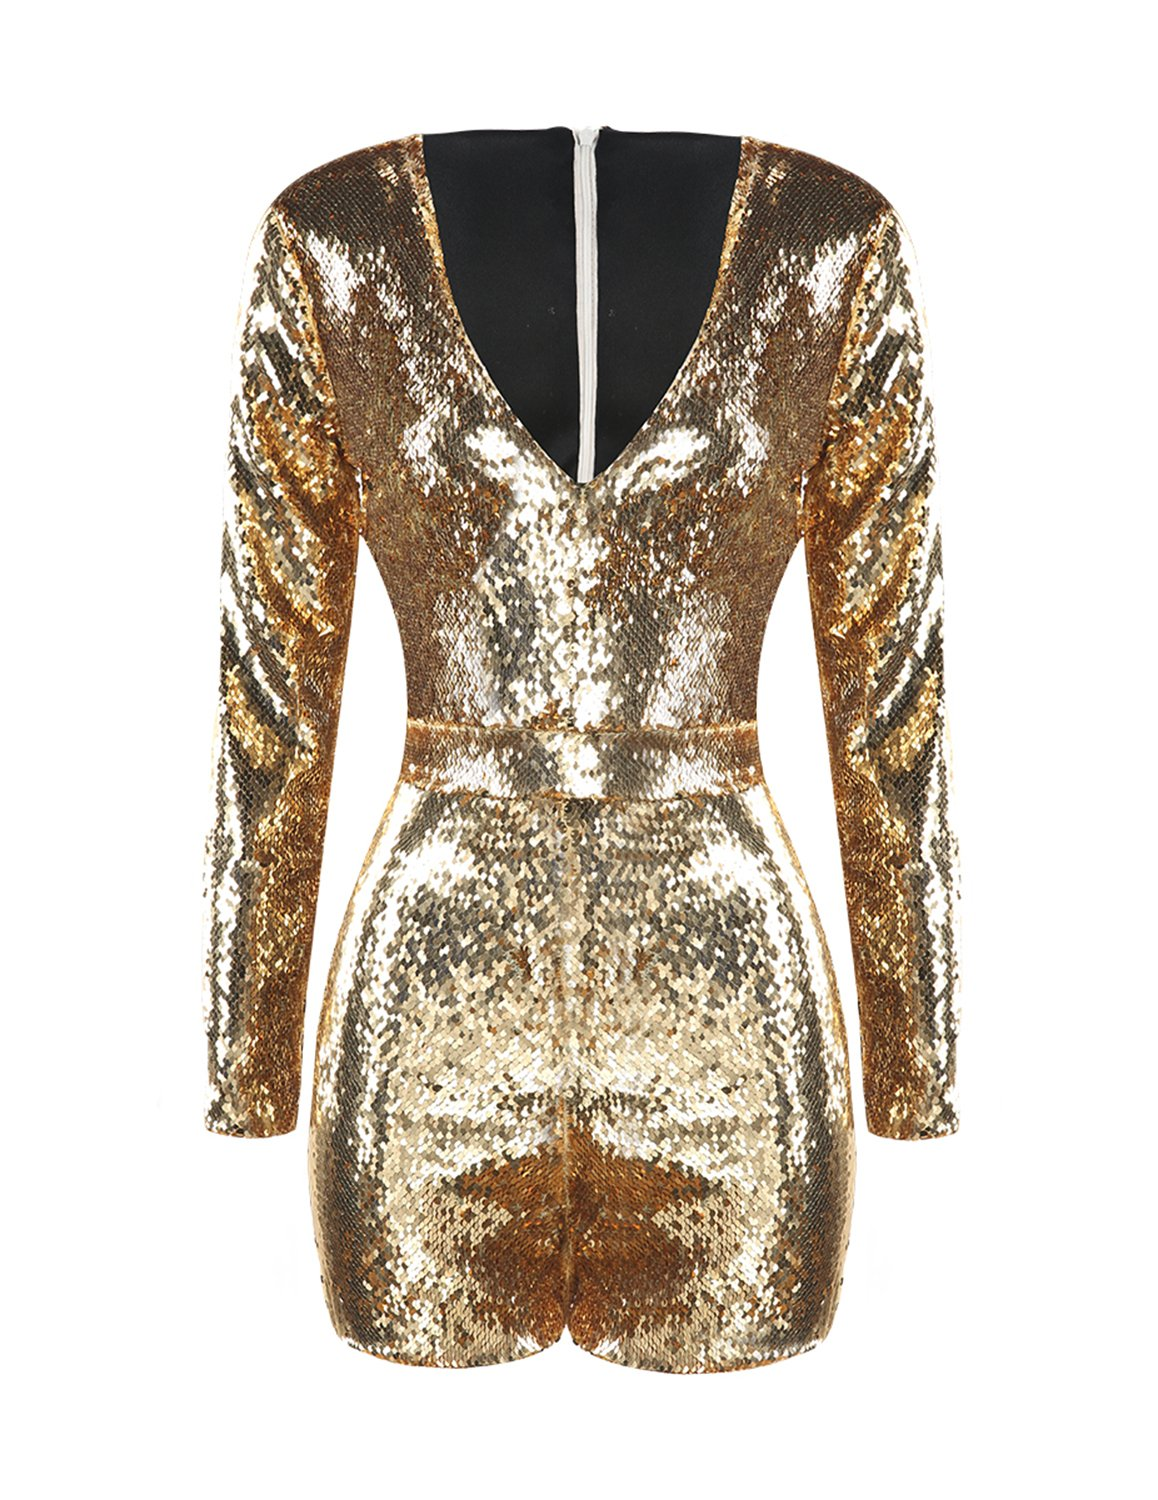 HaoDuoYi Women's Sparkly Sequin V Neck Party Romper Jumpsuit Dress(XXL,Gold)